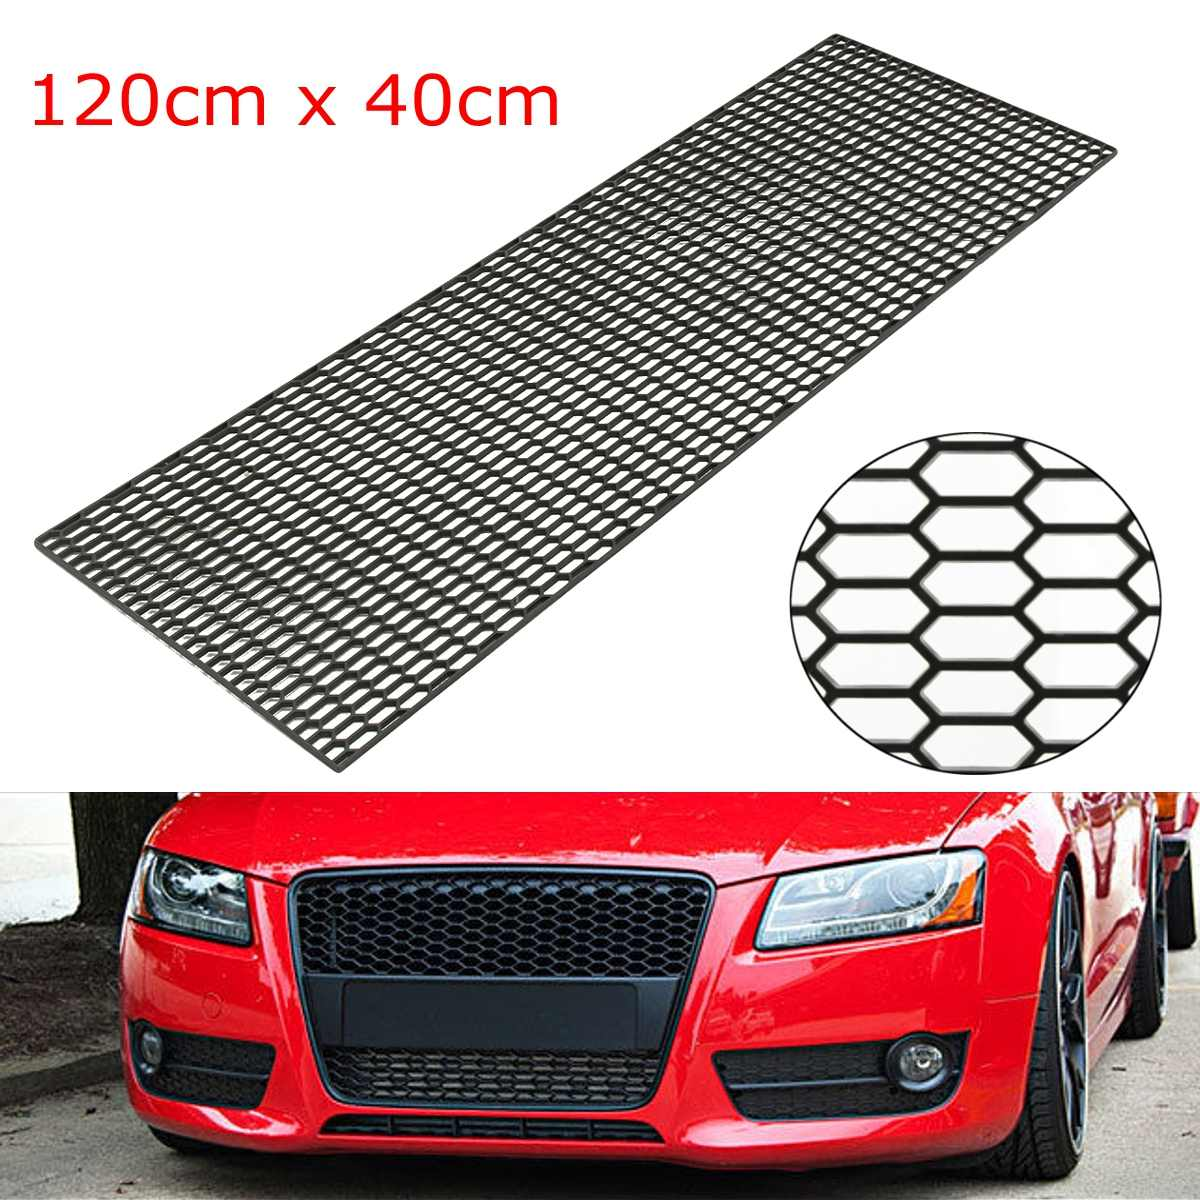 Grille Bumper-Hood Spoiler Meshed Air-Intake Vent-Racing Honeycomb Universal Car-Styling title=